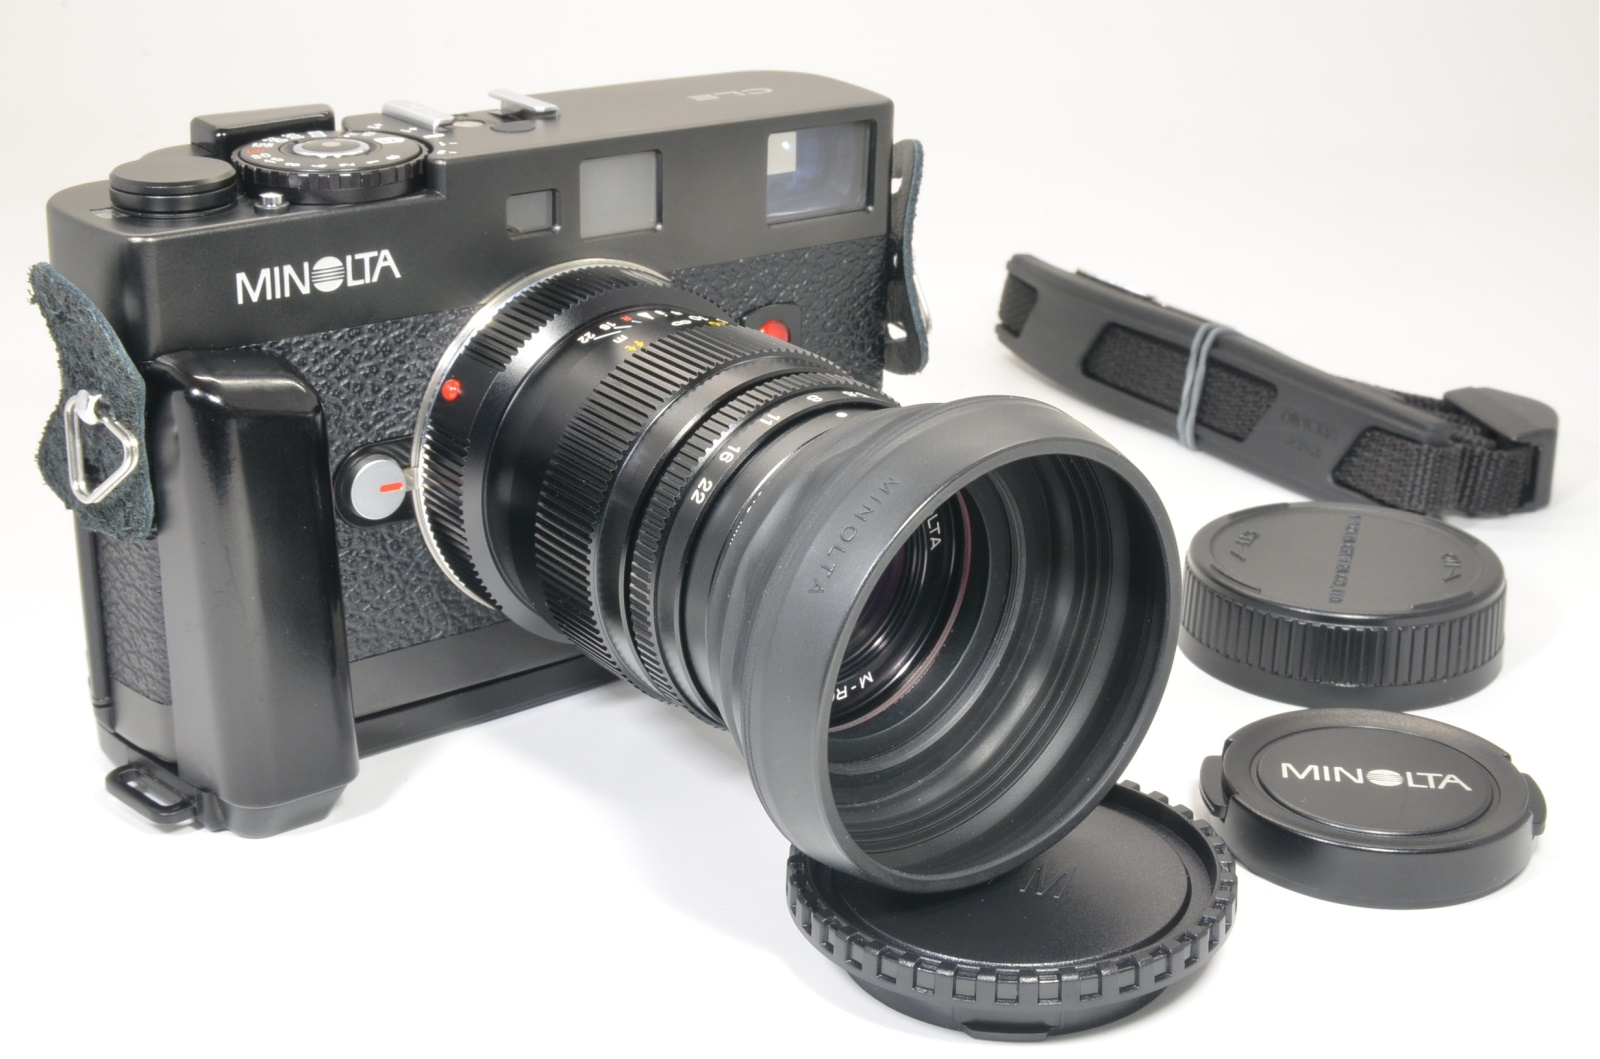 minolta cle 35mm film camera w/ grip and m-rokkor 90mm f4 shooting tested